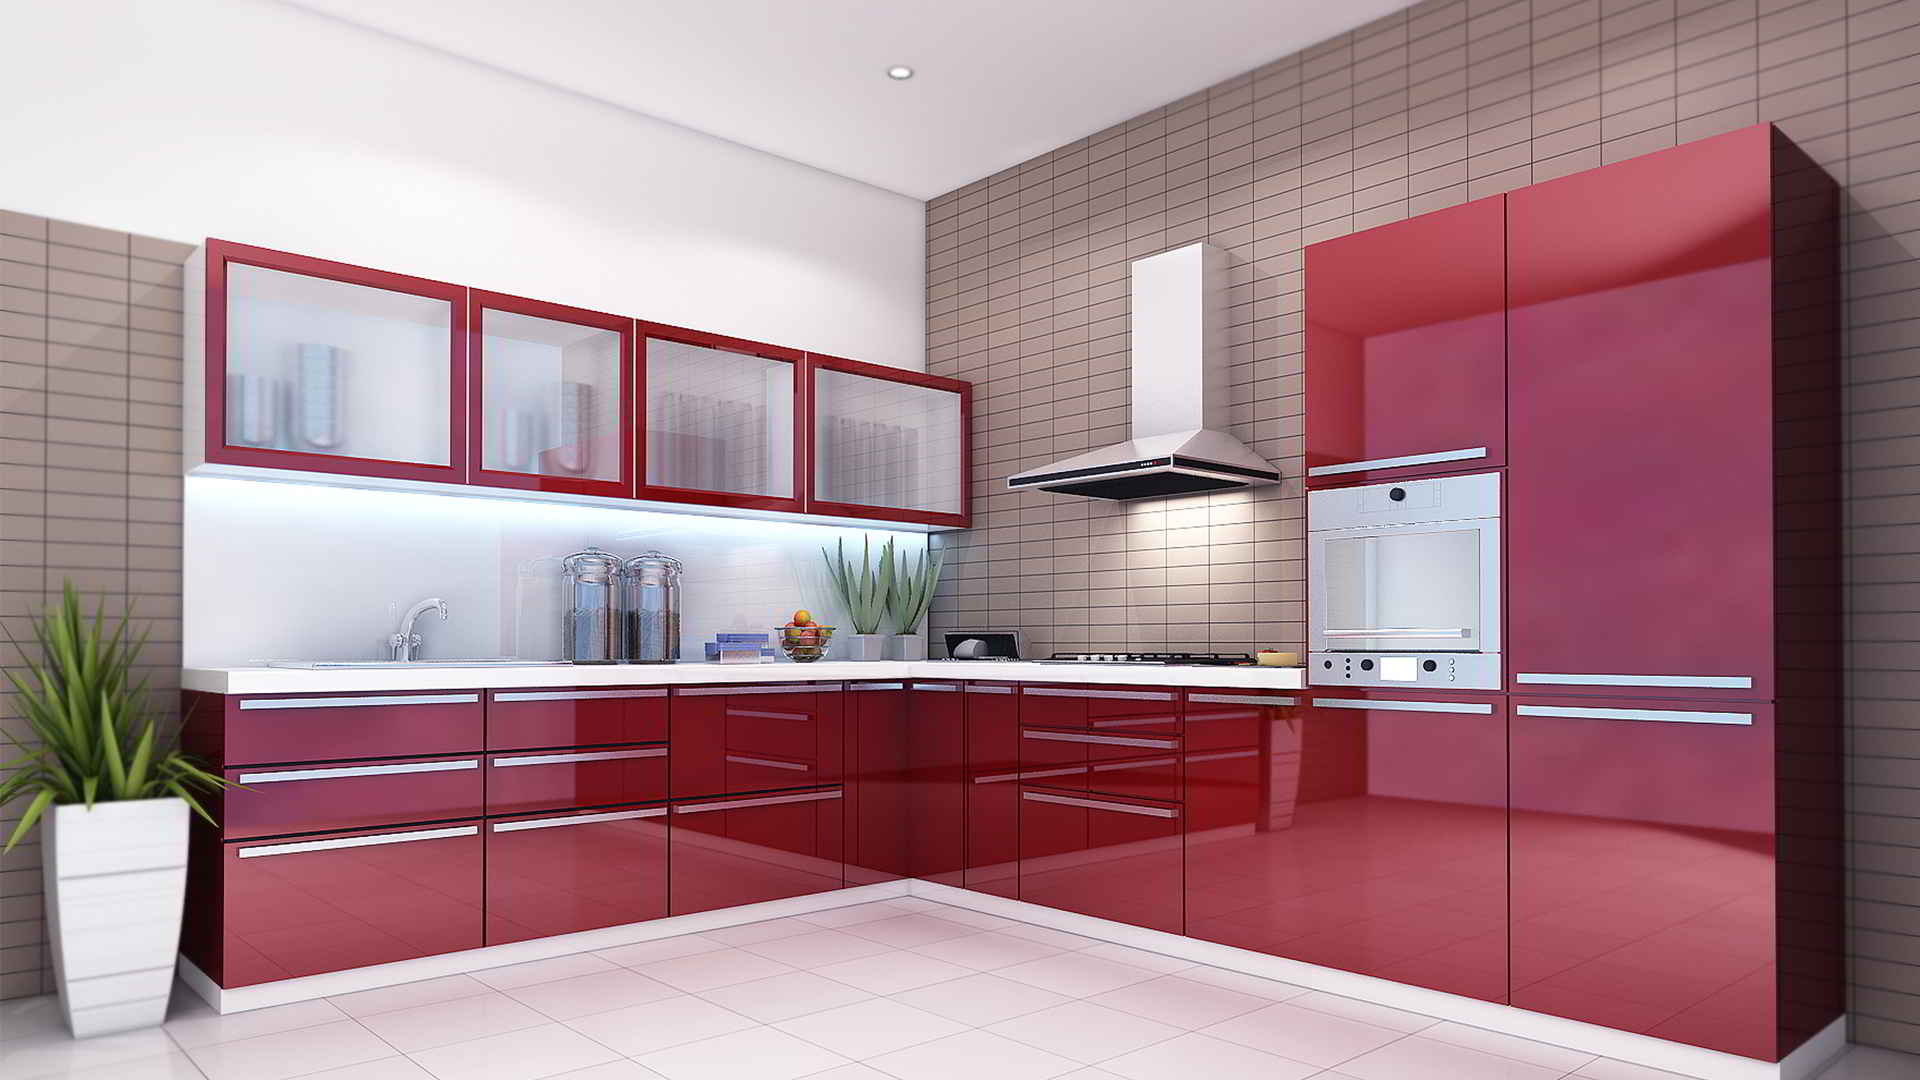 Wallpaper Modular Kitchen Design Ideas Of Kerala Trivandrum Mobile Hd Pics Red Color Ideas And Latest